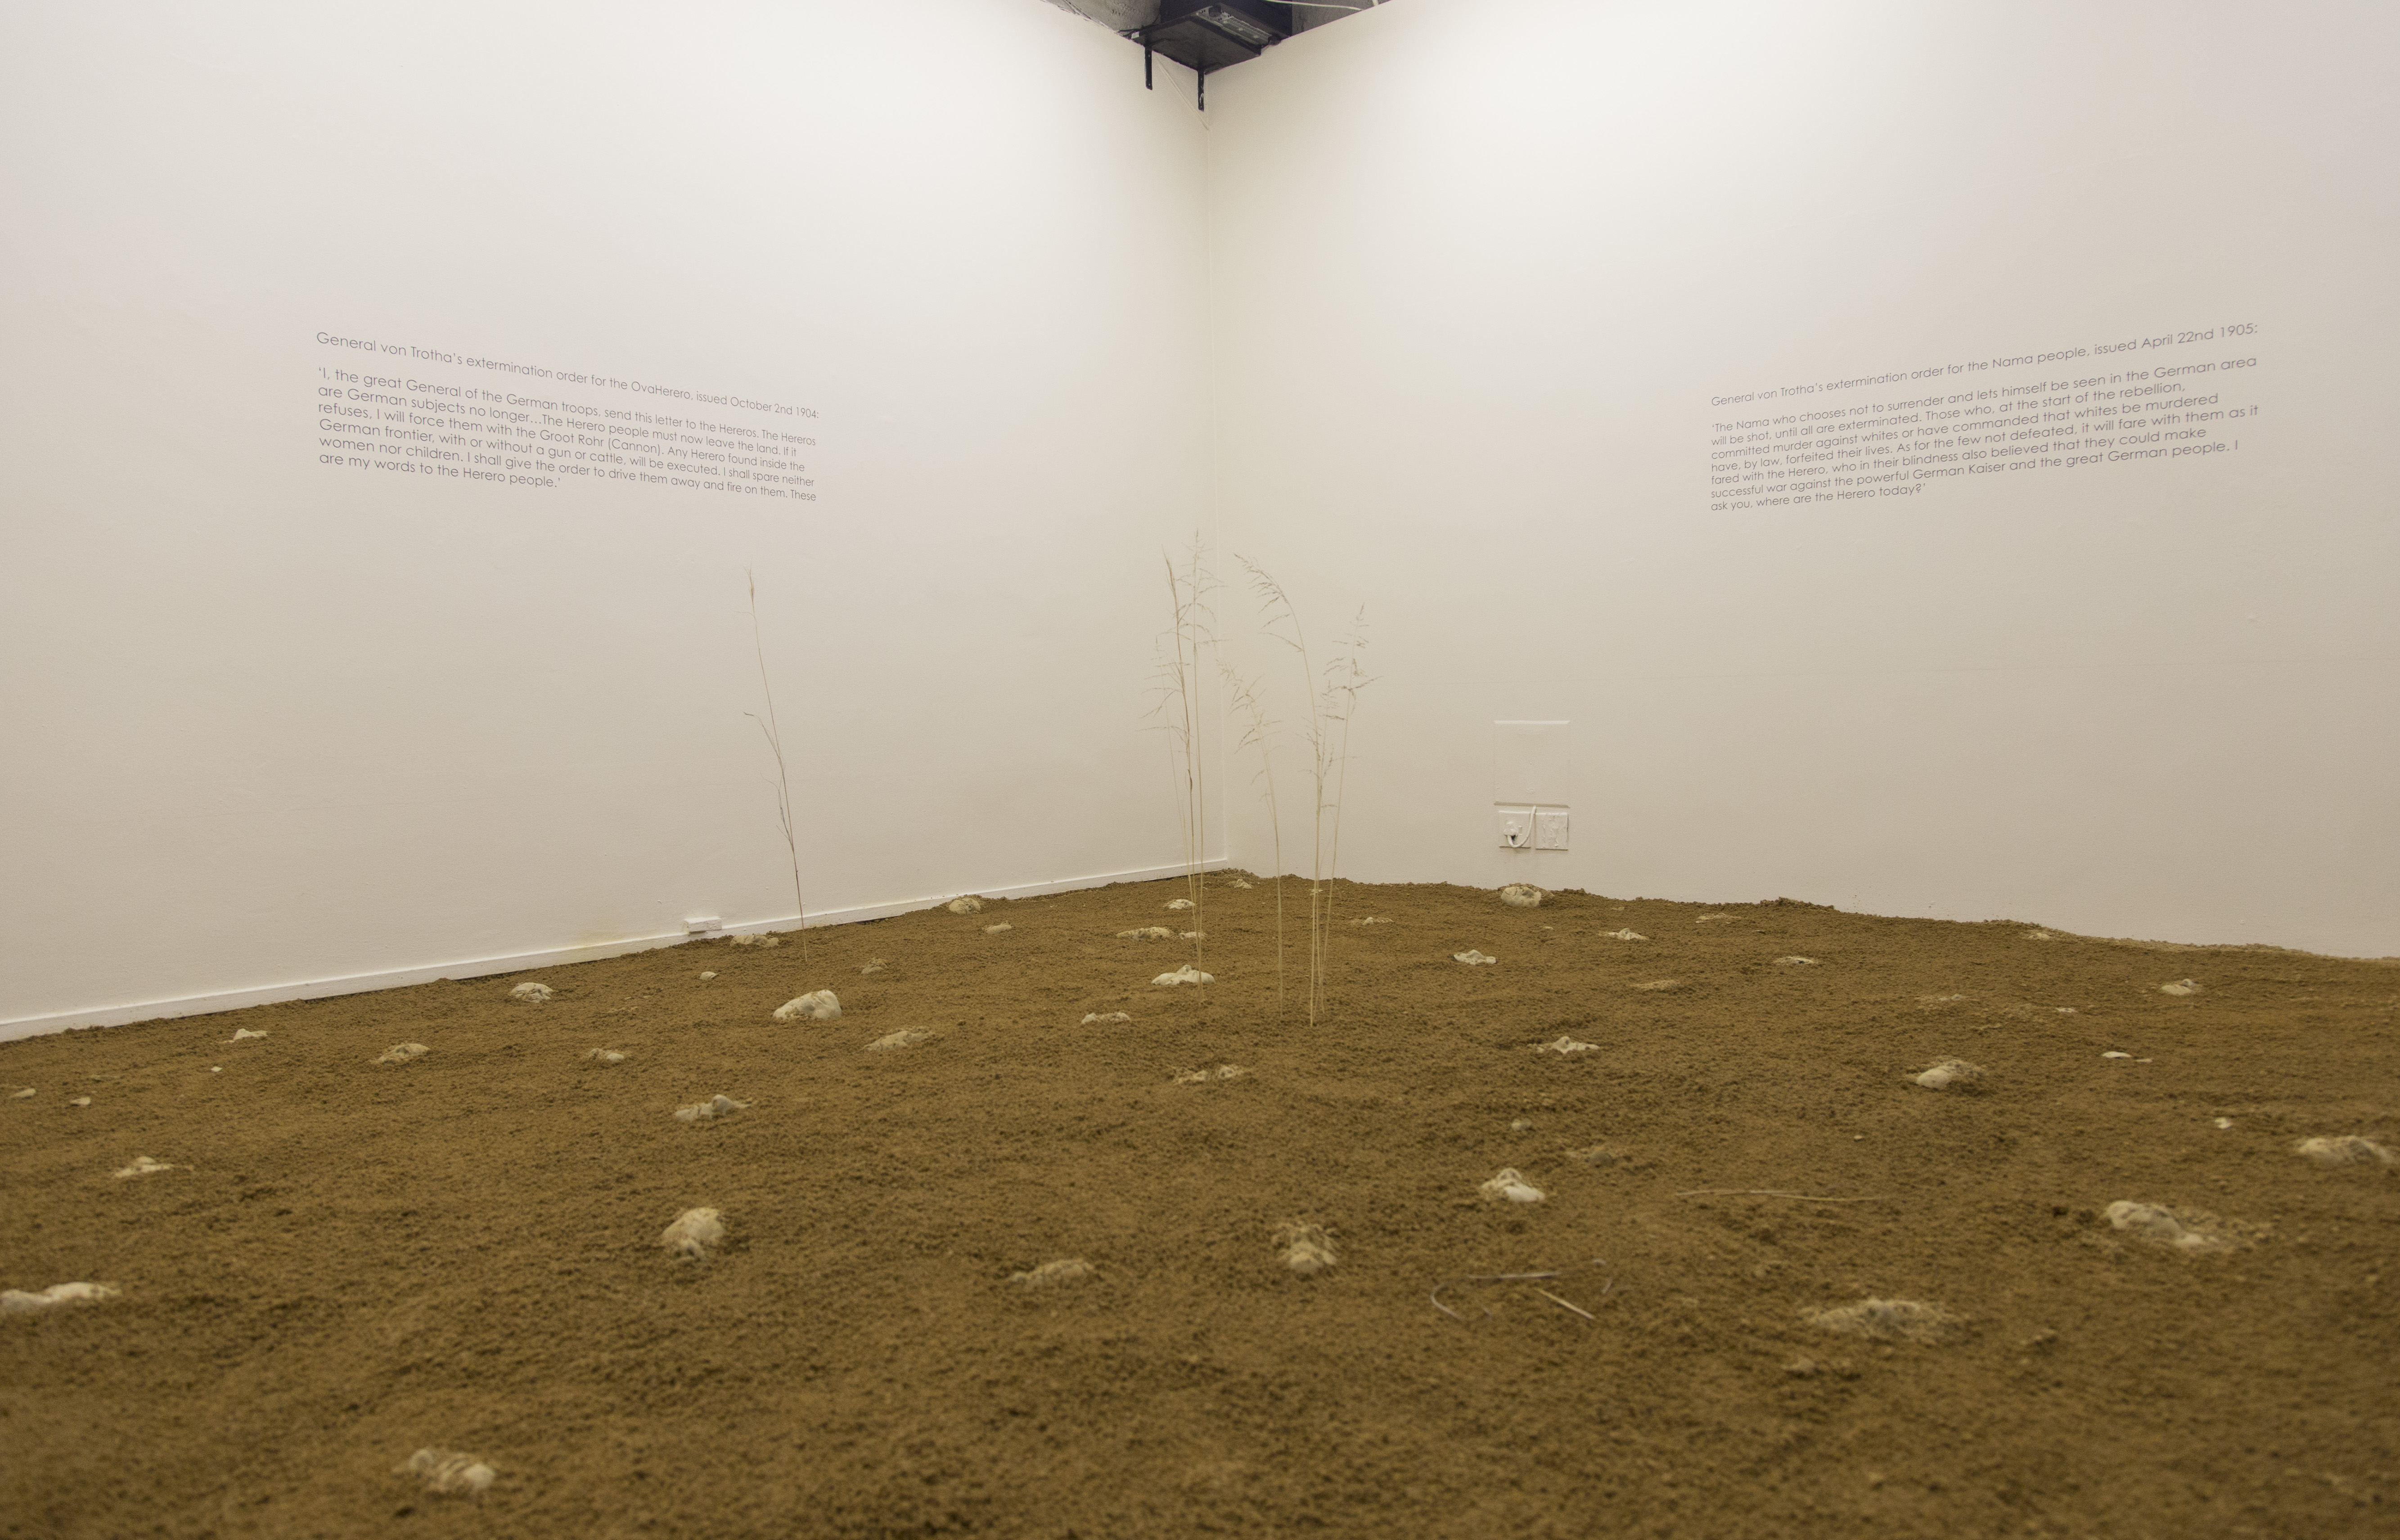 Unearthing_Exhibition_Opening_008.jpg